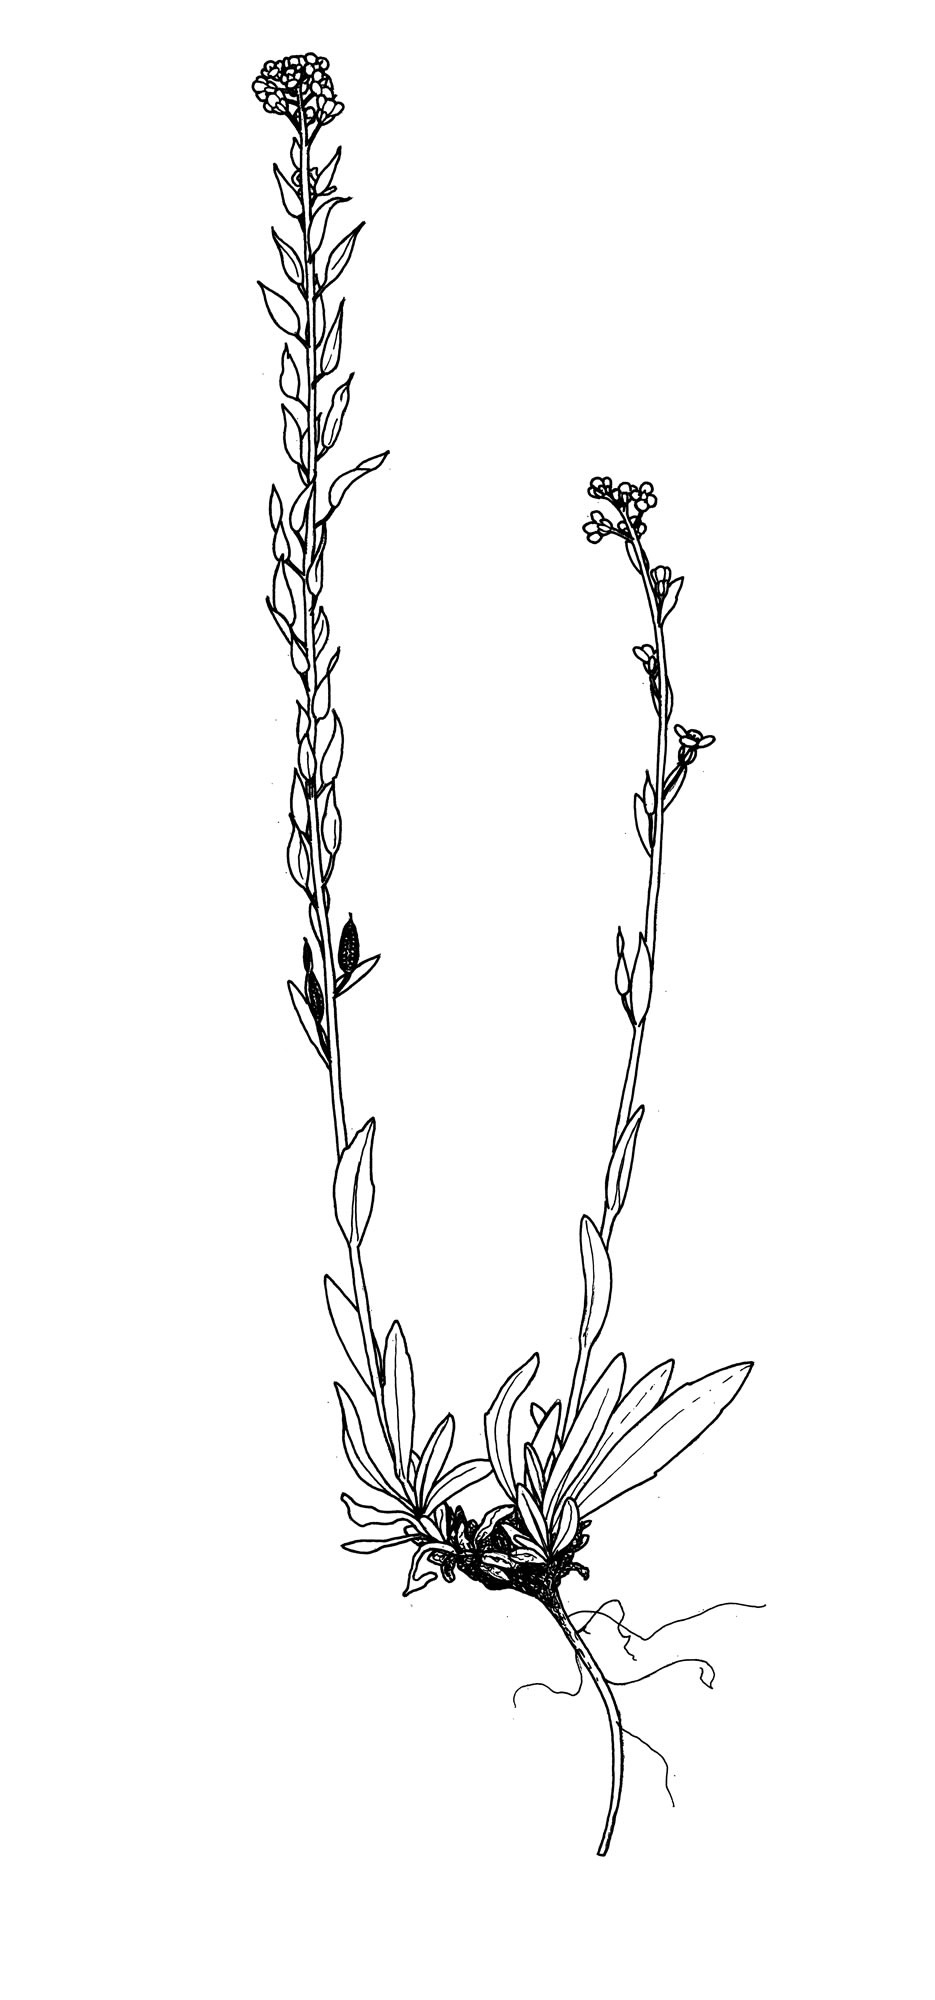 Illustration of Draba aurea